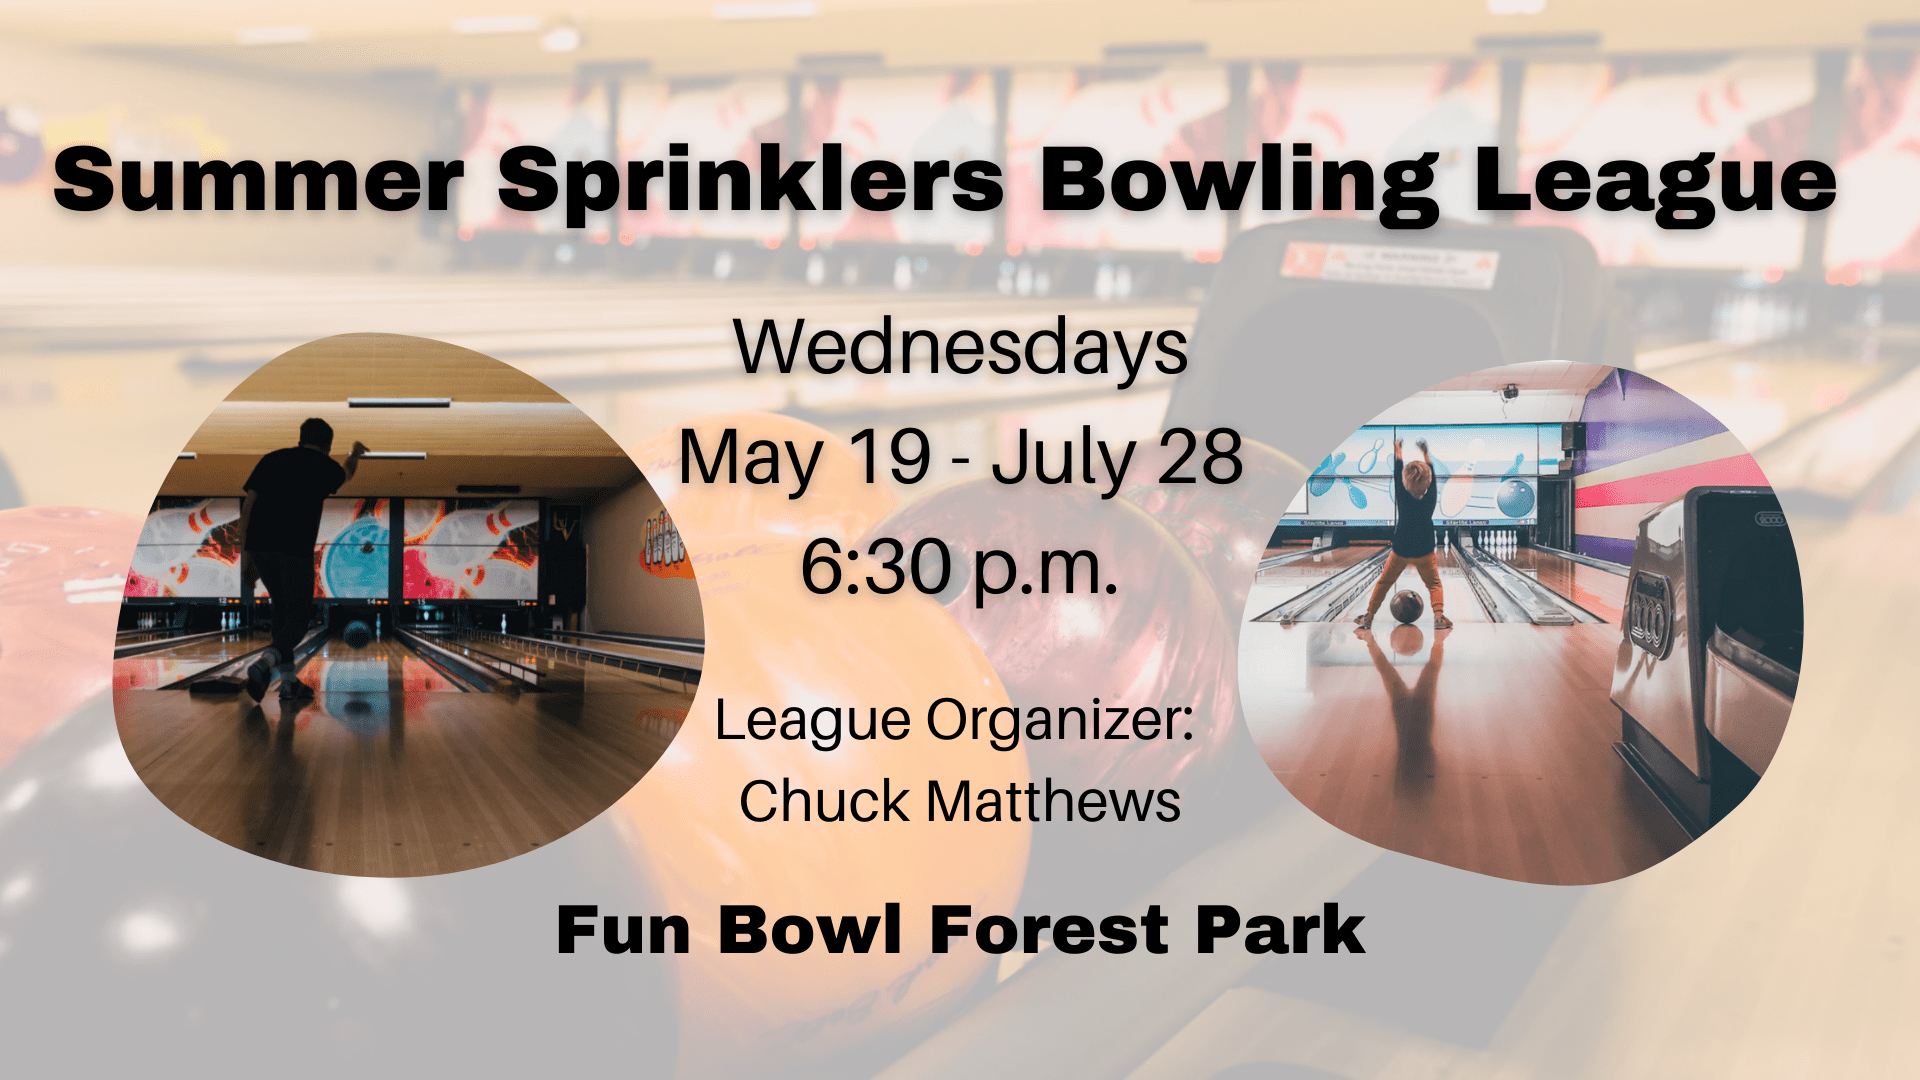 Summer Sprinklers Bowling League